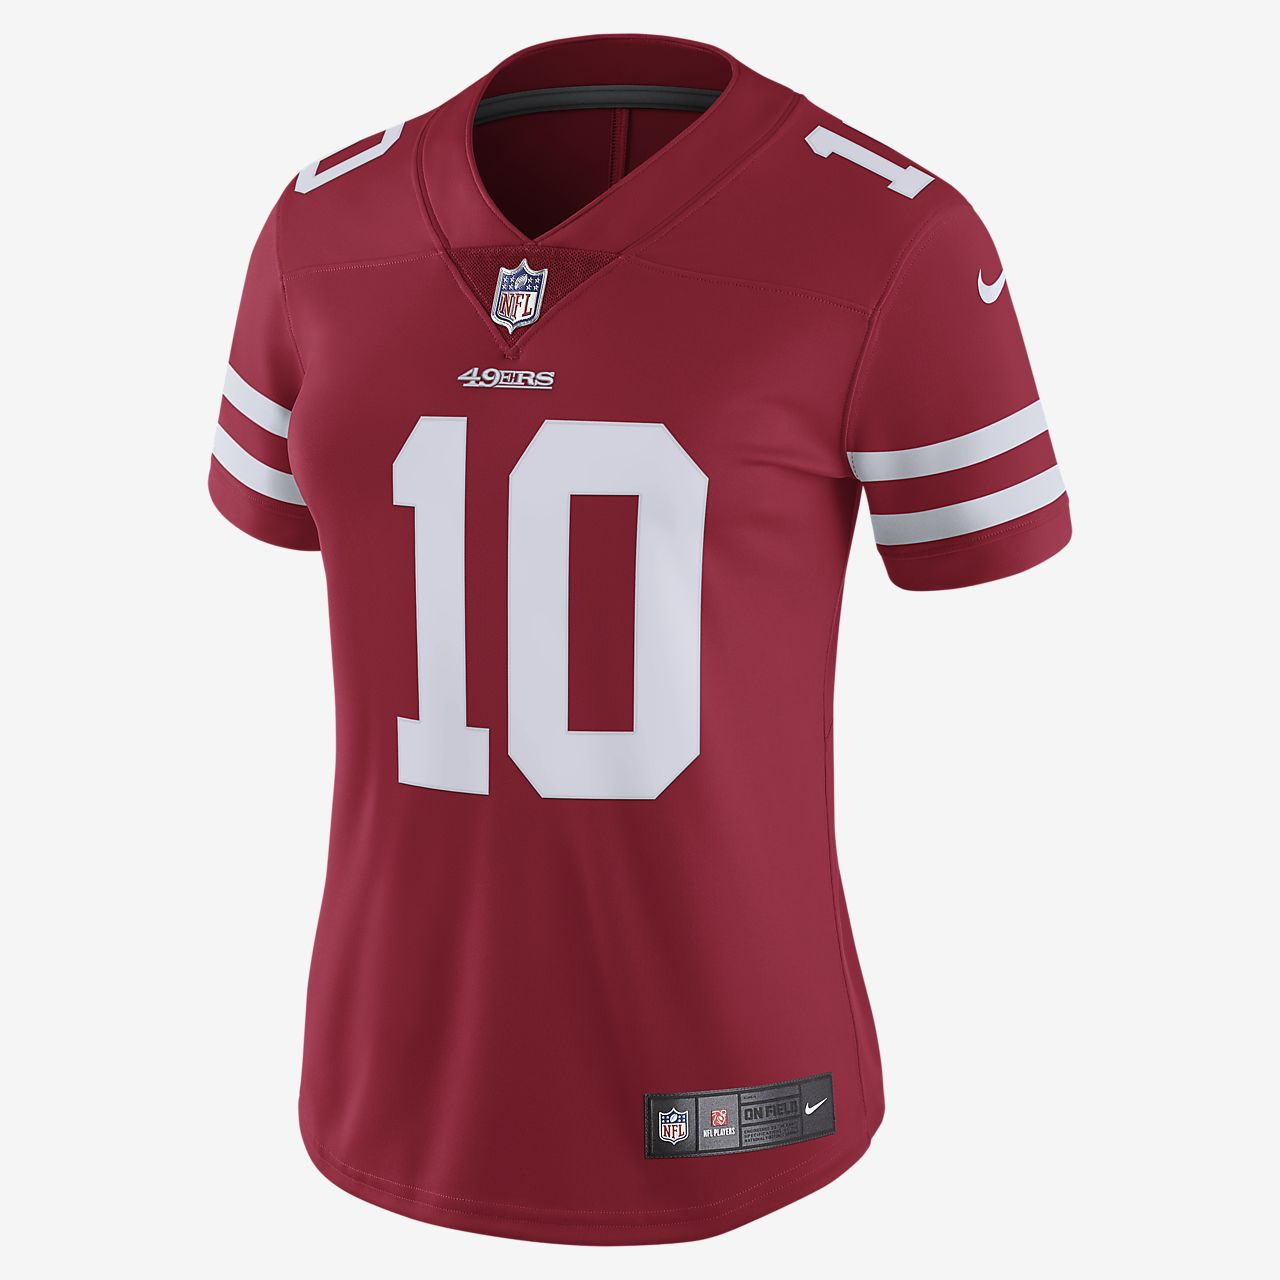 Women s Football Jersey. NFL San Francisco 49ers Limited (Jimmy Garoppolo) 5e487a7933